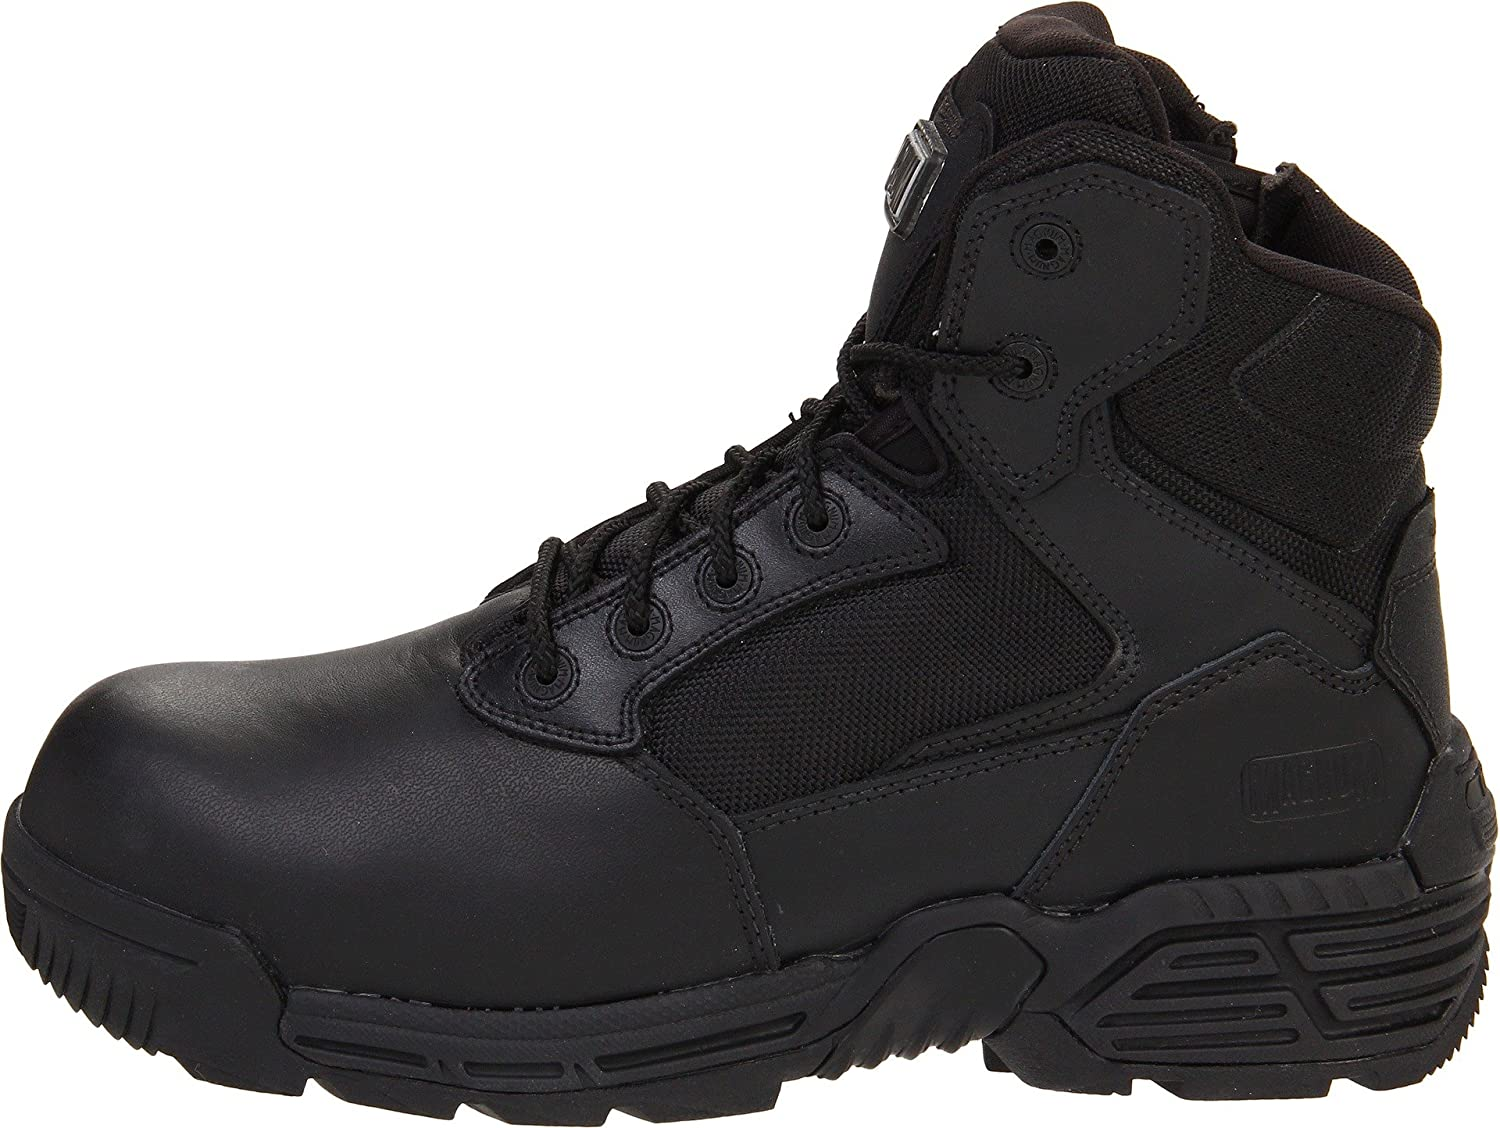 MagnumStealth Force 6.0 Side-Zip Composite Toe 6DMYzpNZE0